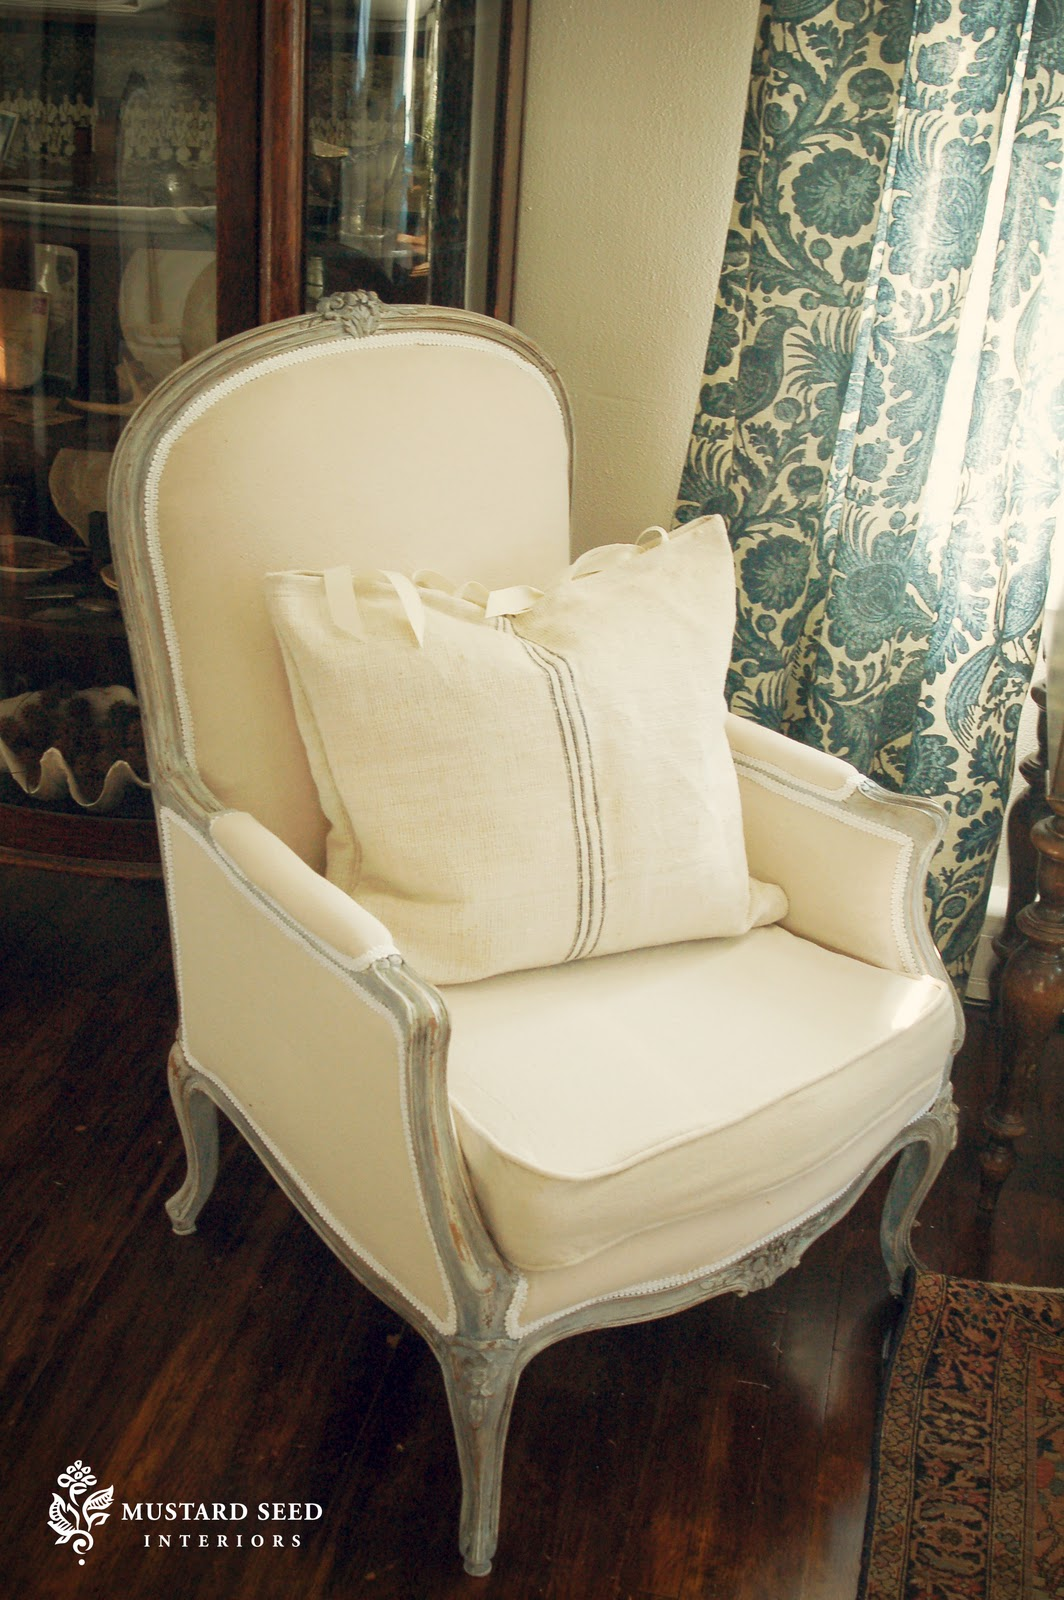 How to reupholster a louis chair - French Chair Makeover